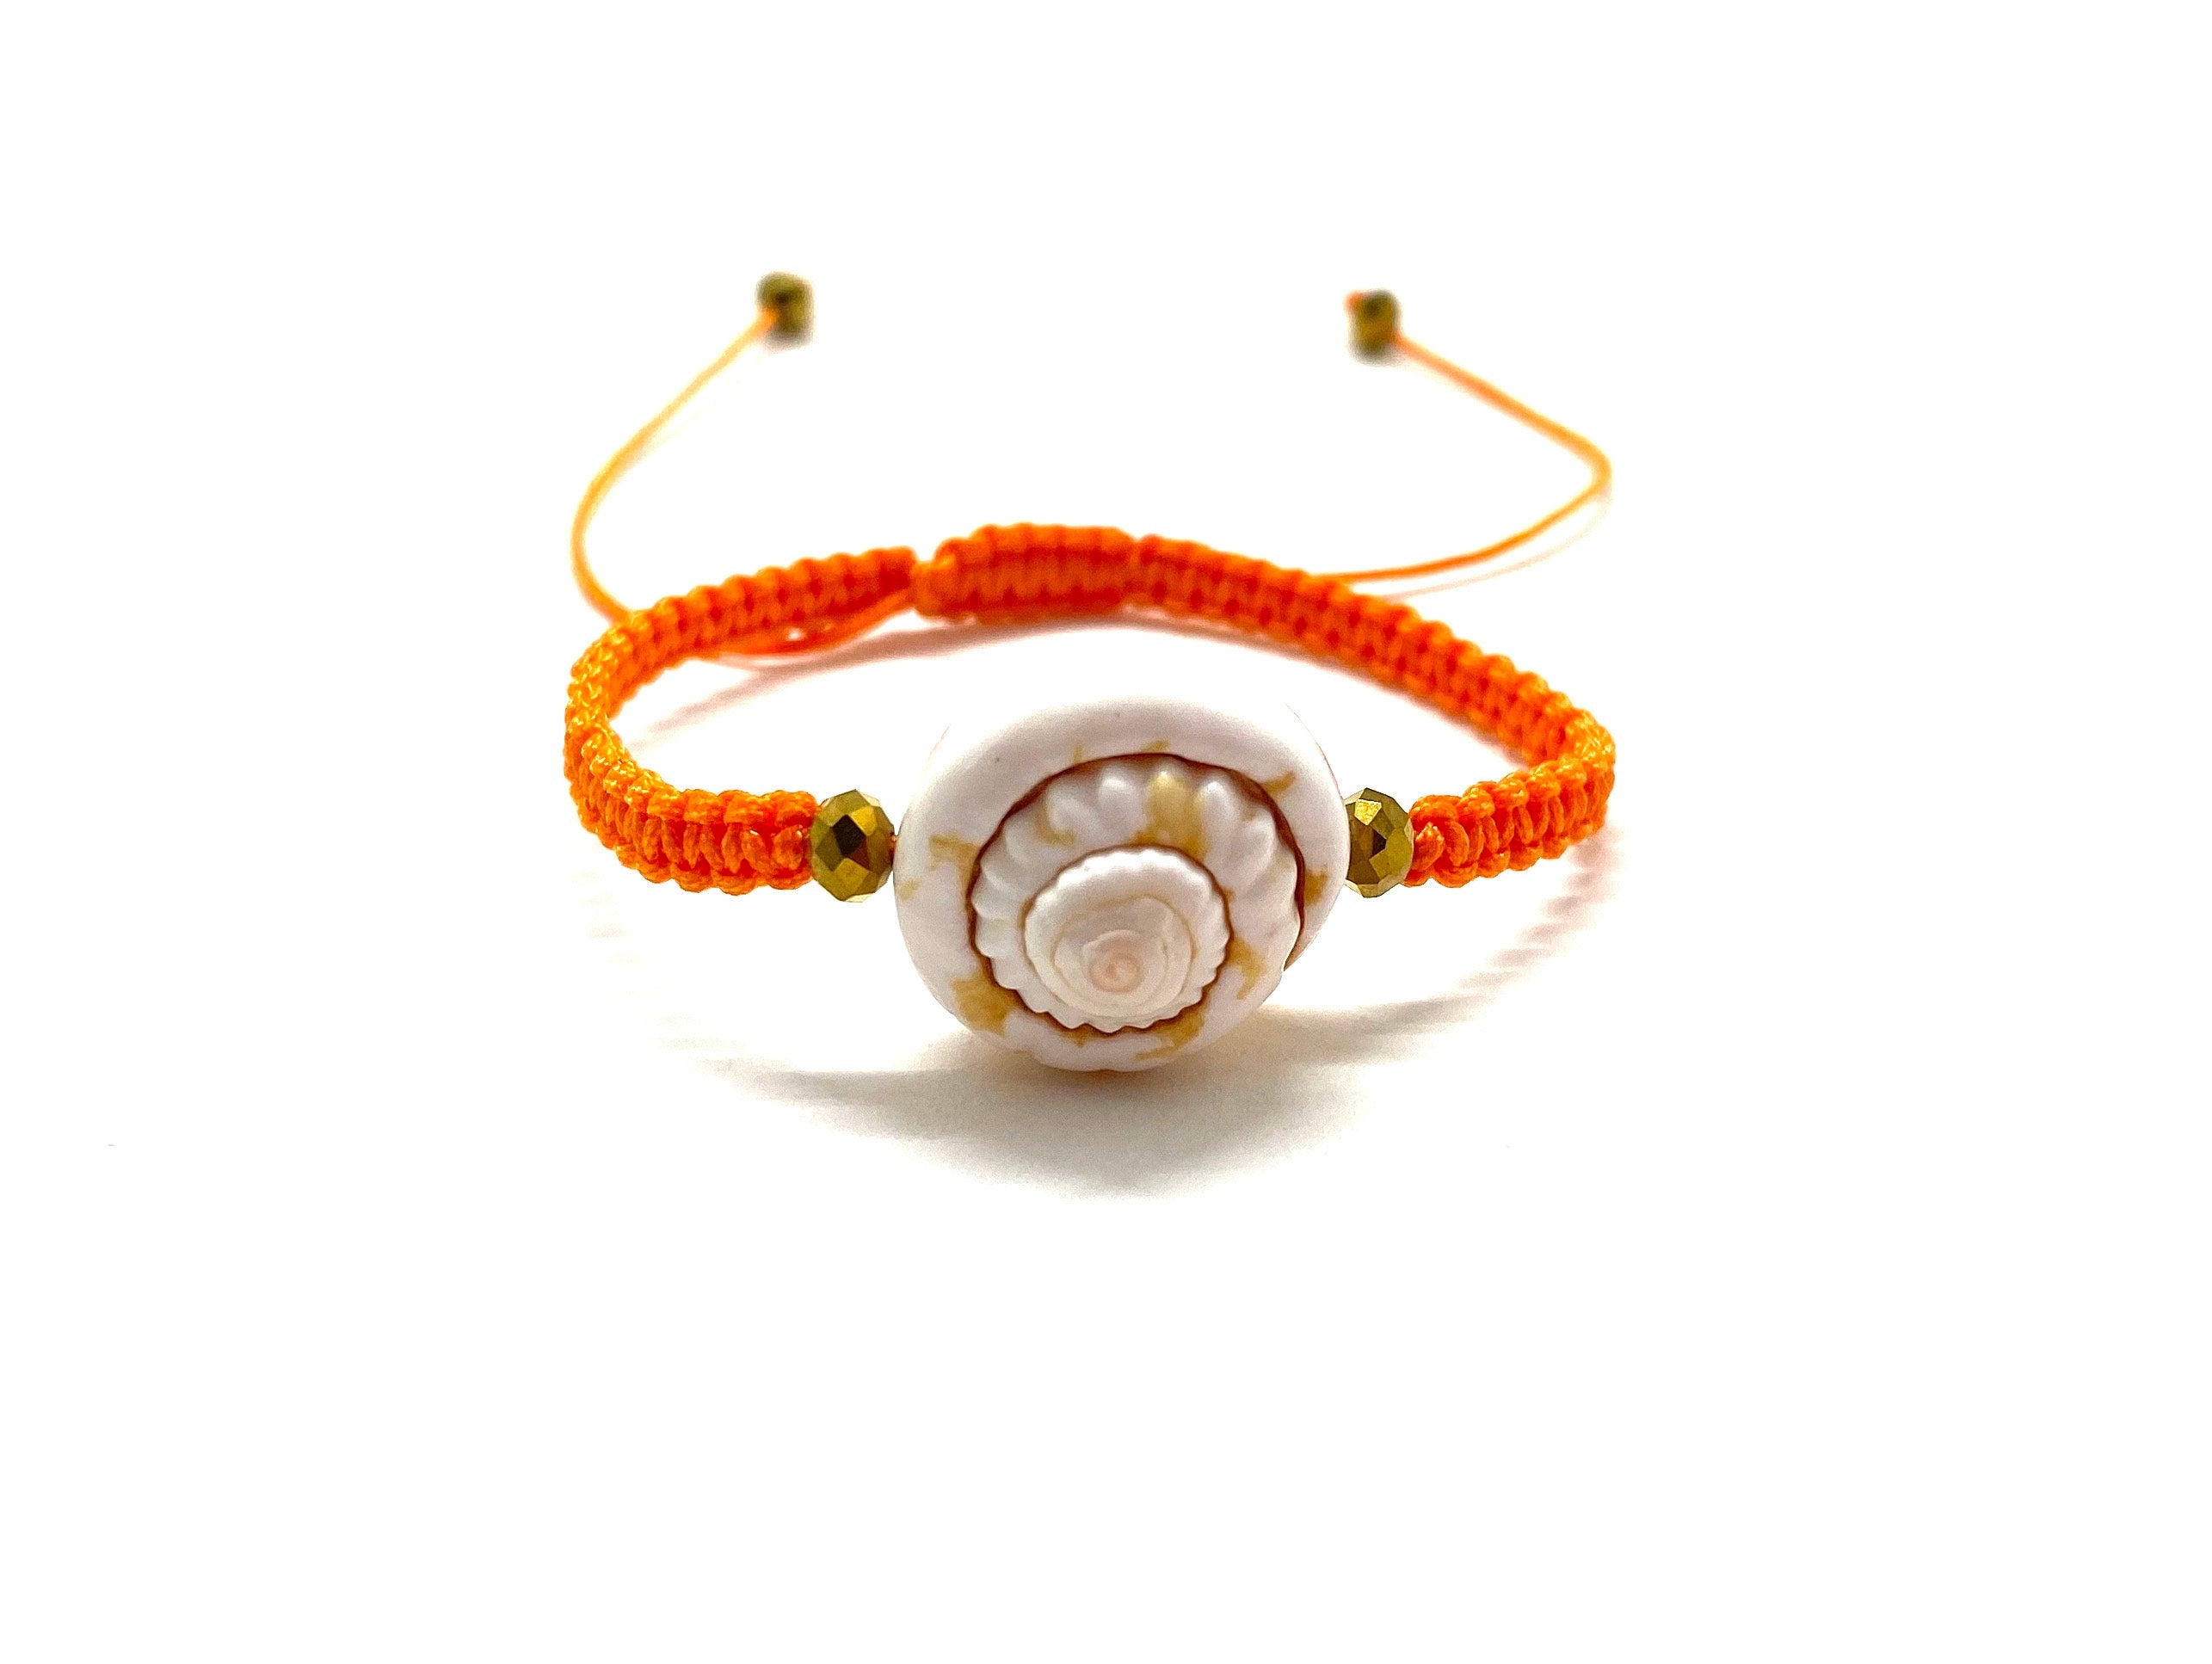 Seashell bracelet, gold Swarovski beads and orange braided cord